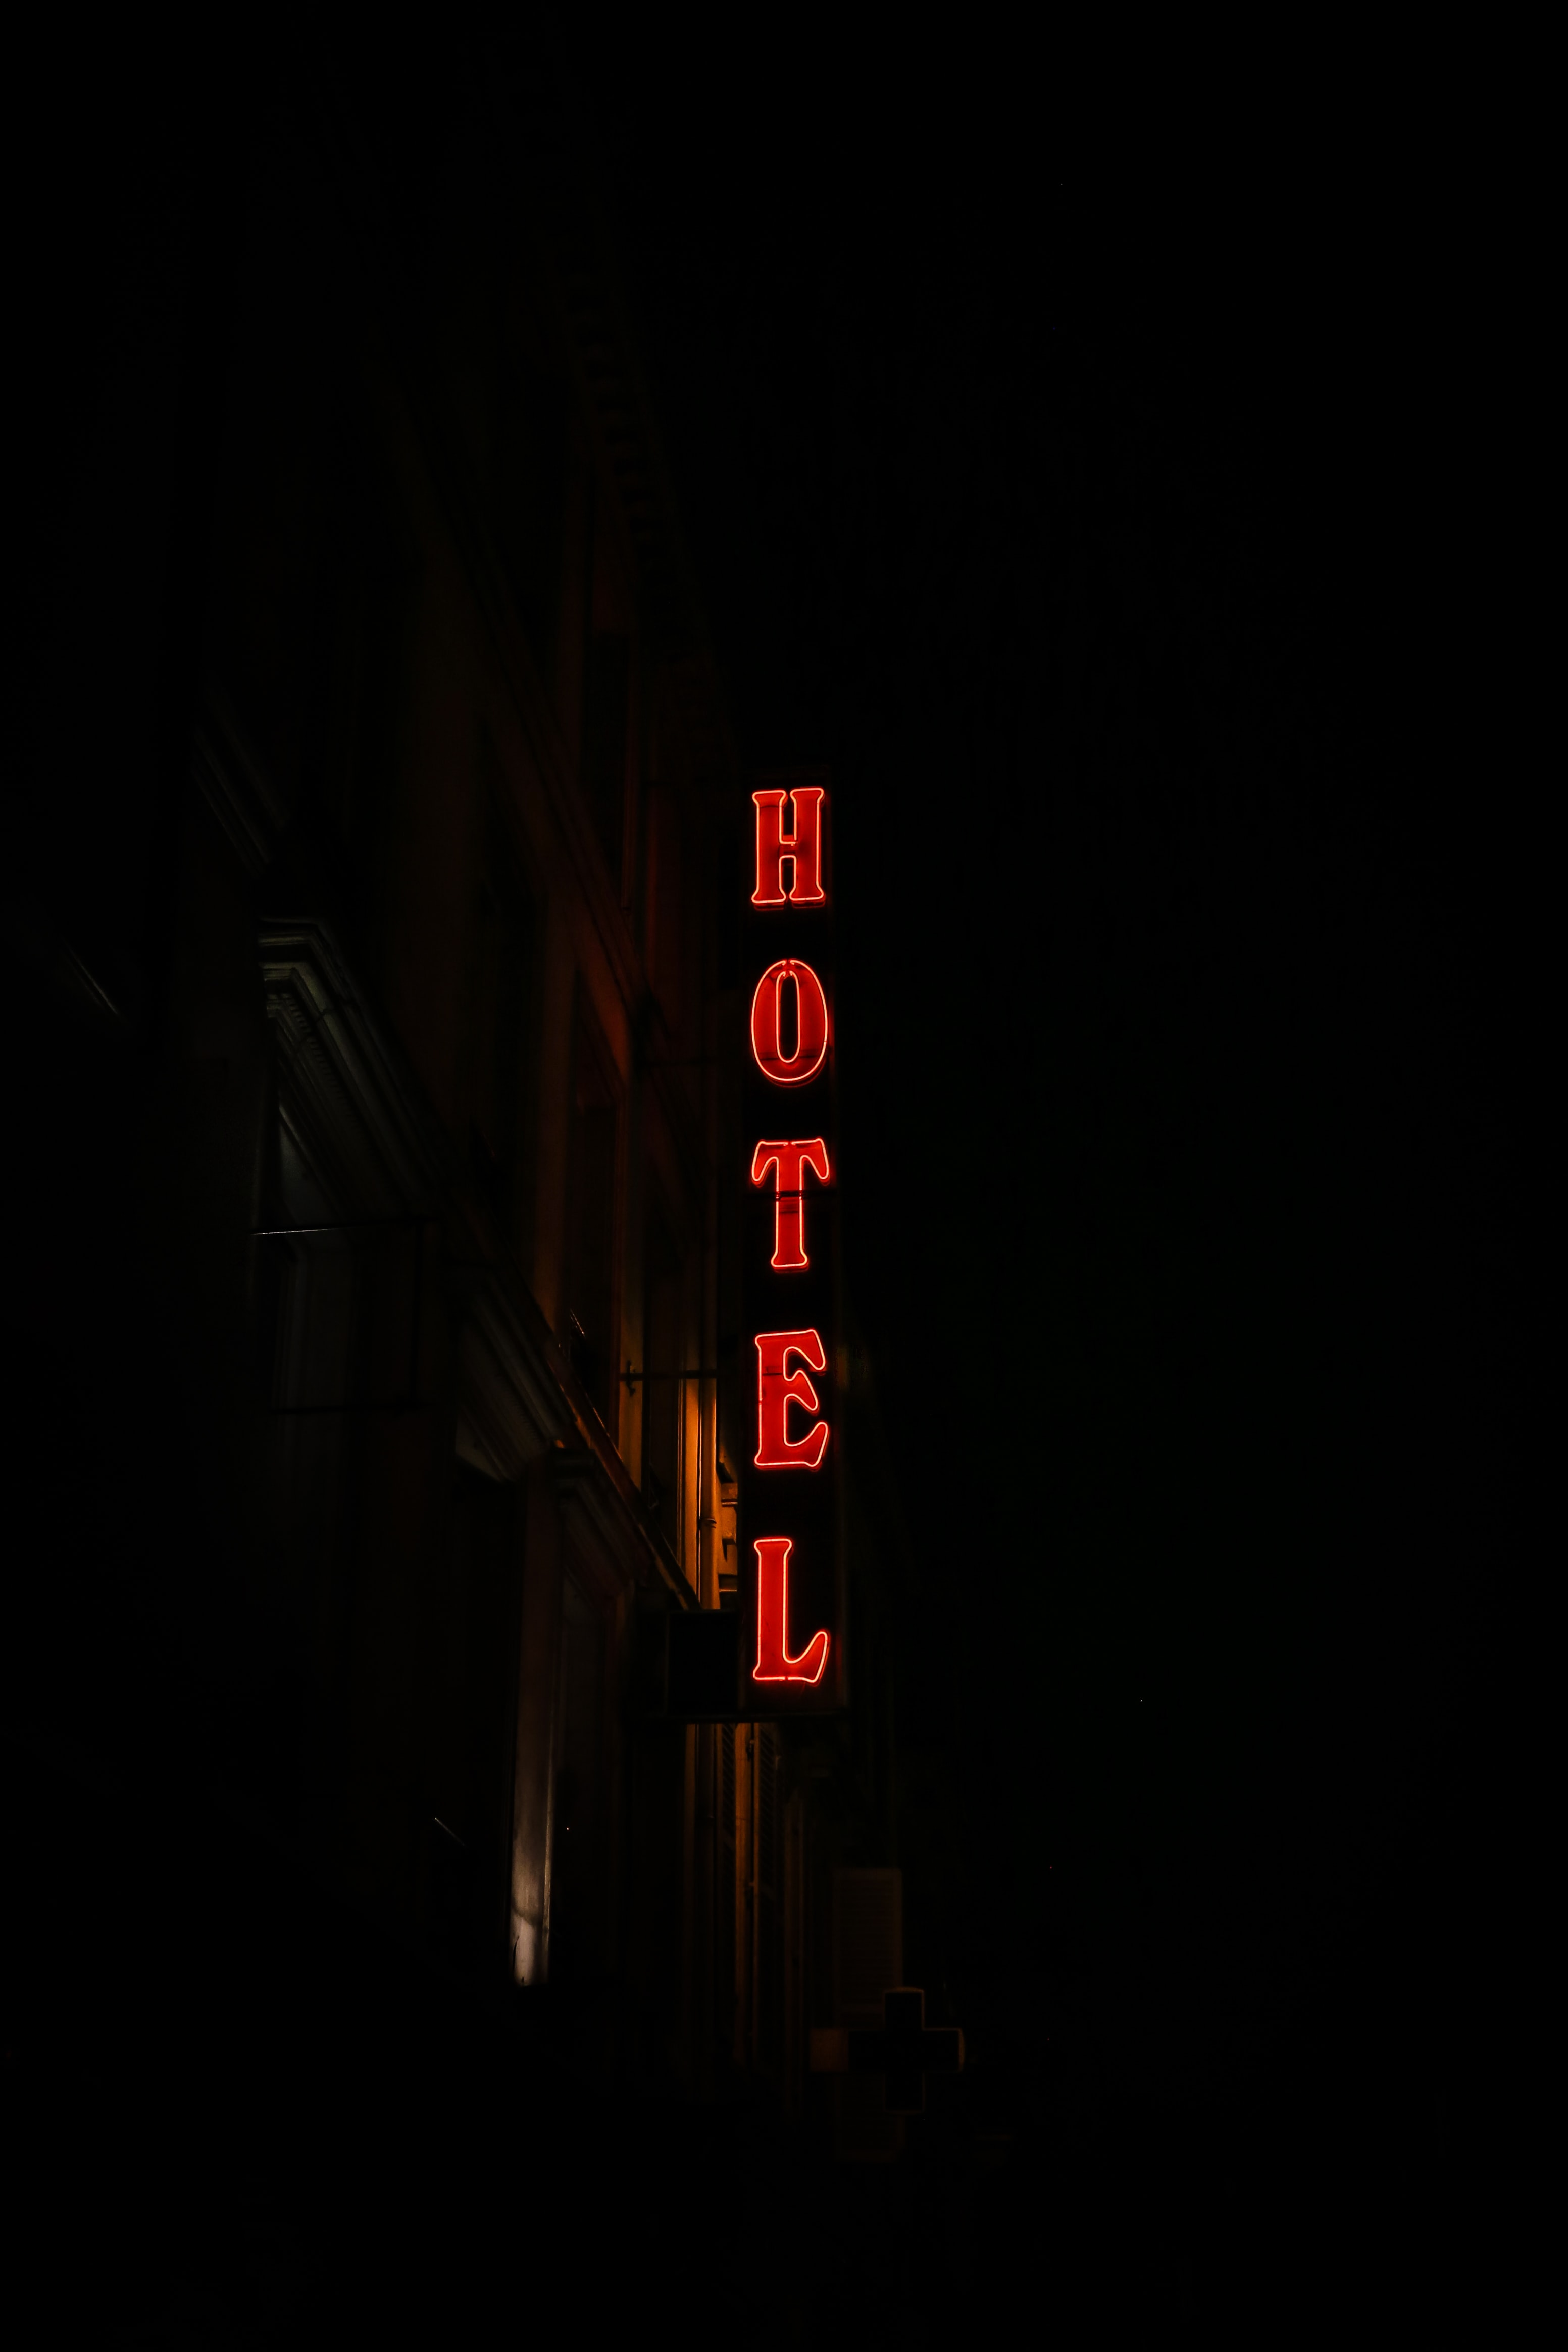 low-angle photography of Hotel signage